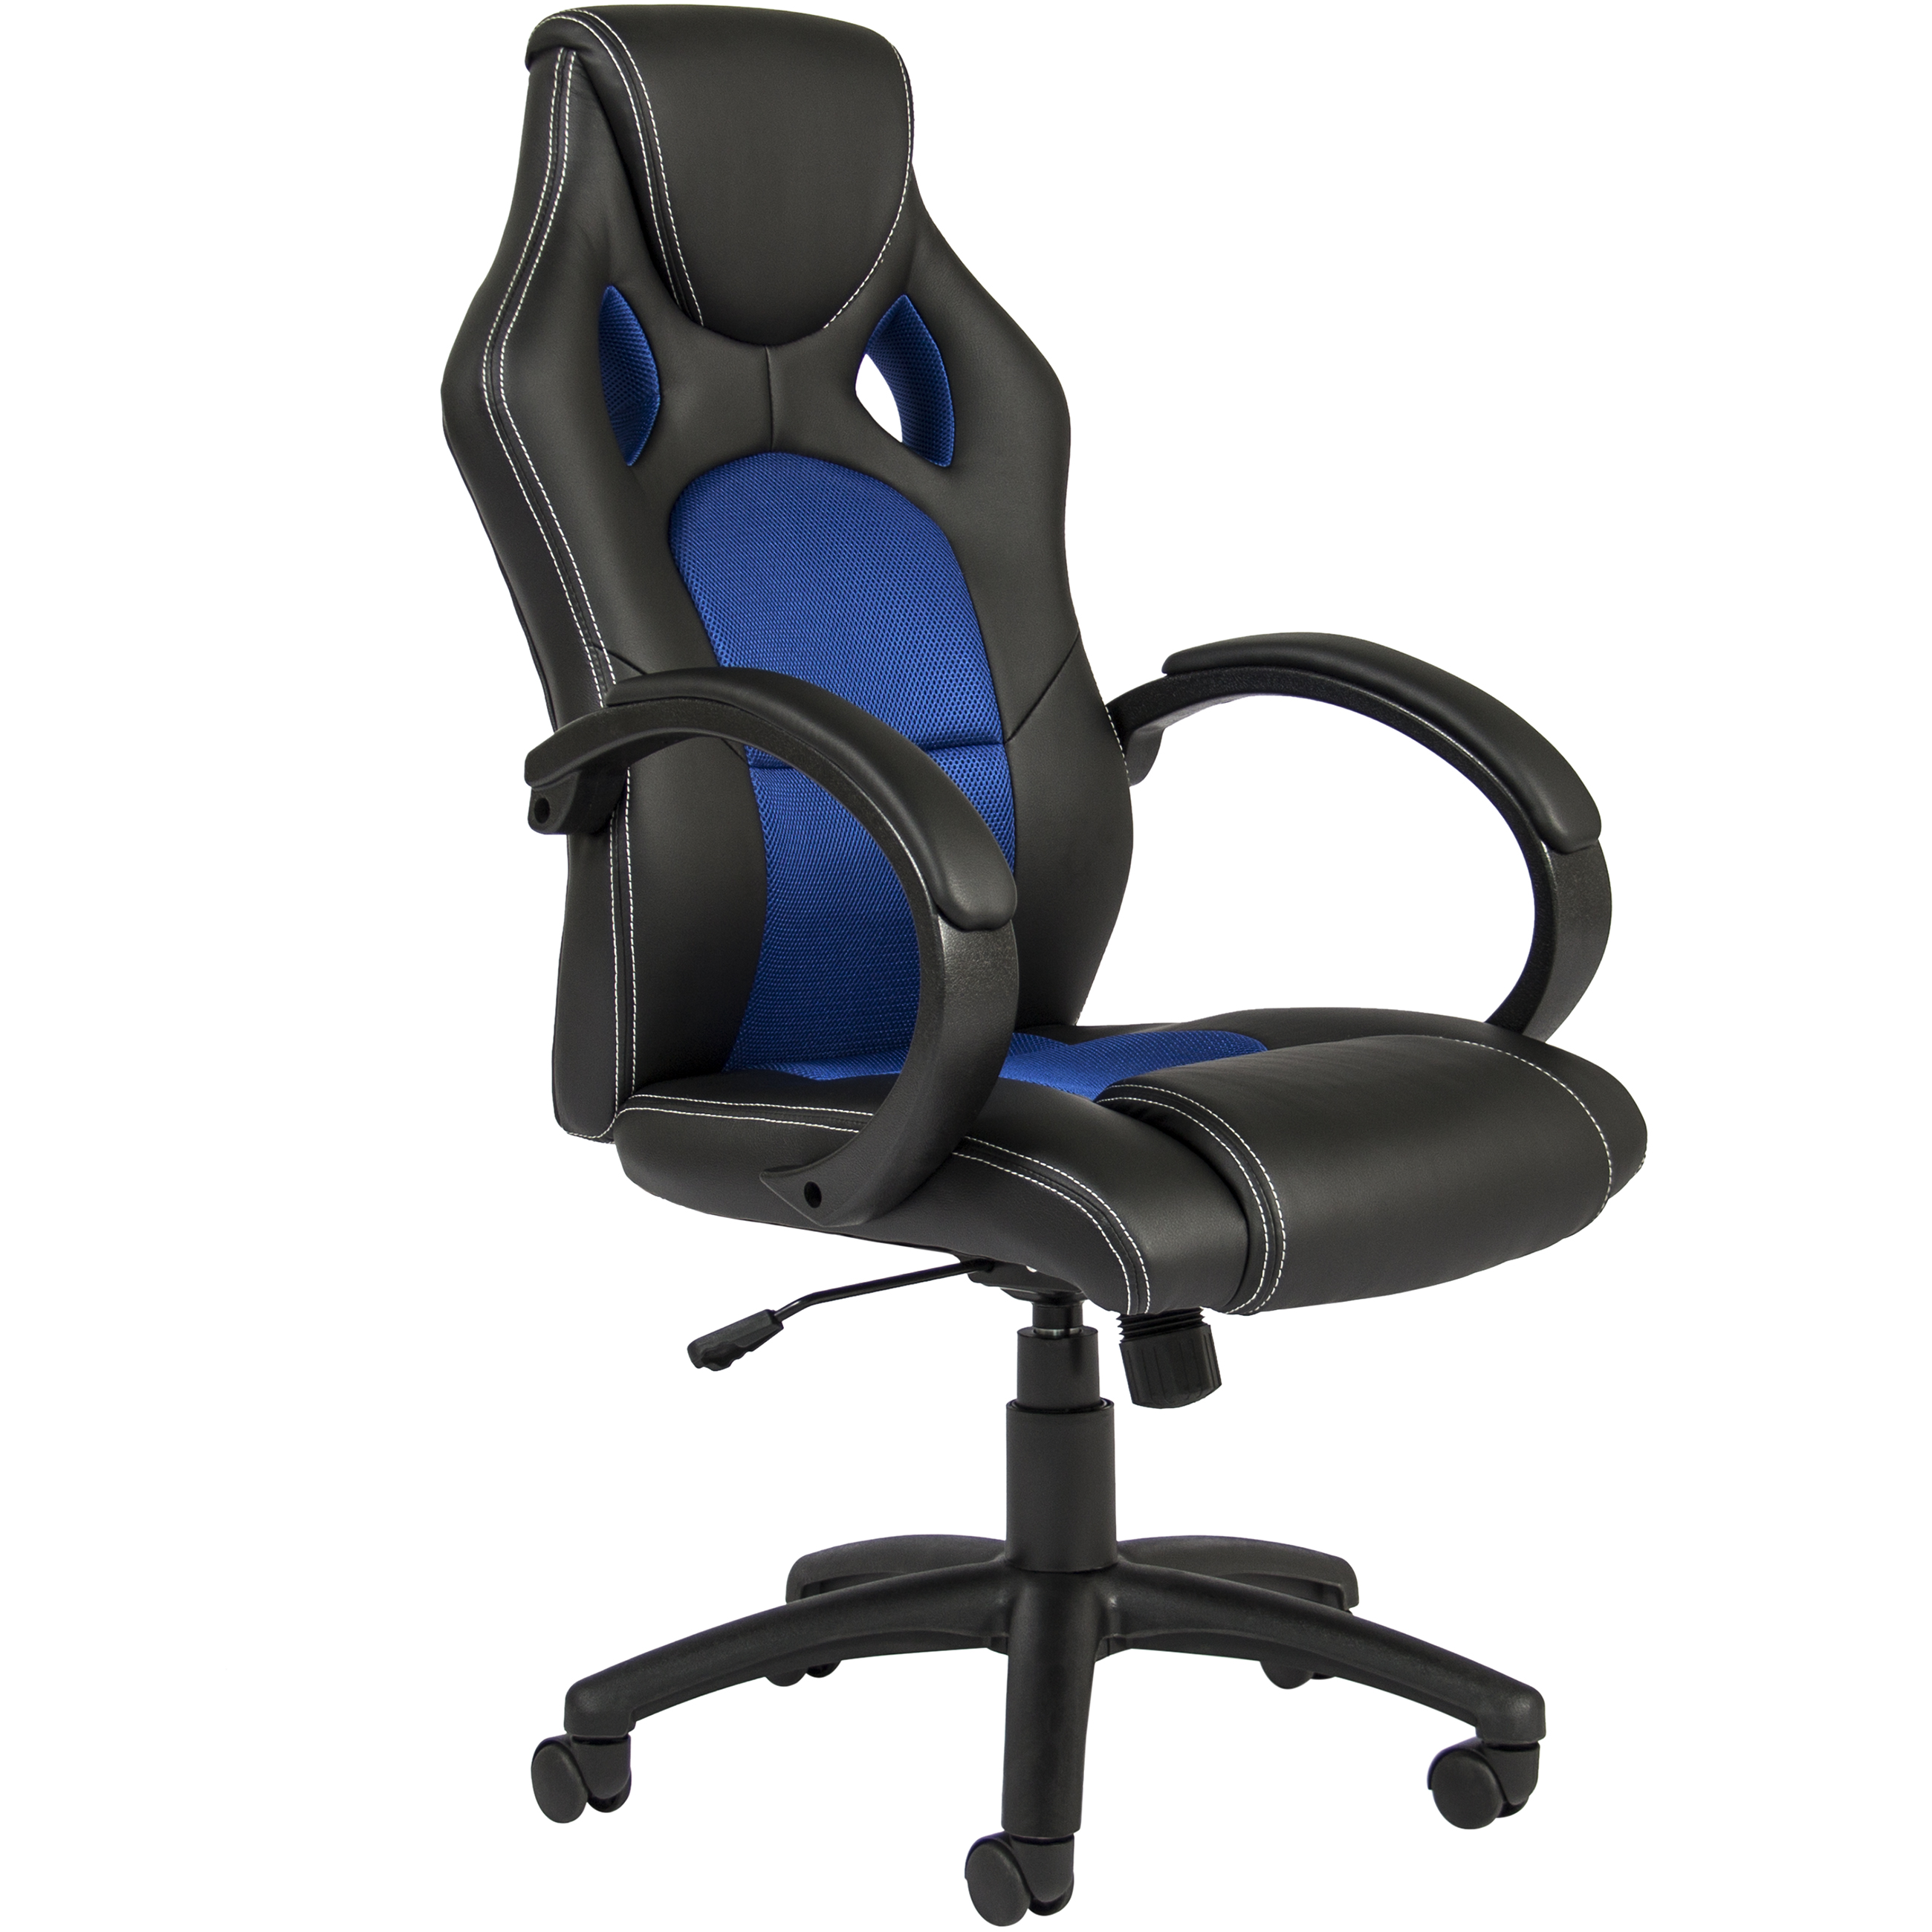 Attractive Executive Racing Gaming Office Chair PU Leather Swivel Computer Desk Seat  High Back